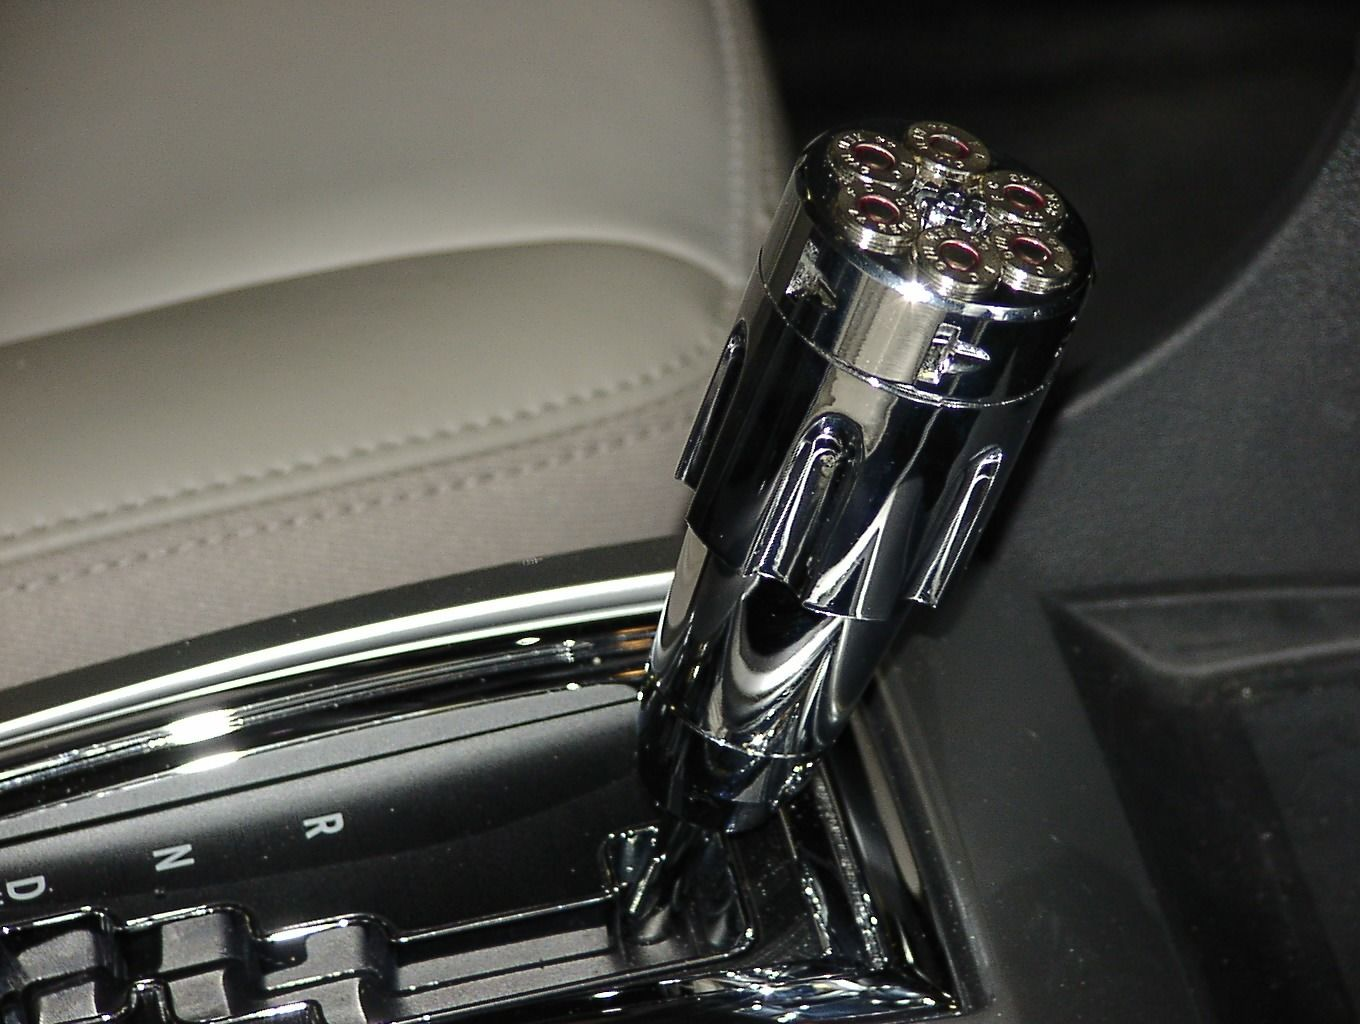 44 mag shift knob handgun shifter www DieselTees com | Guns